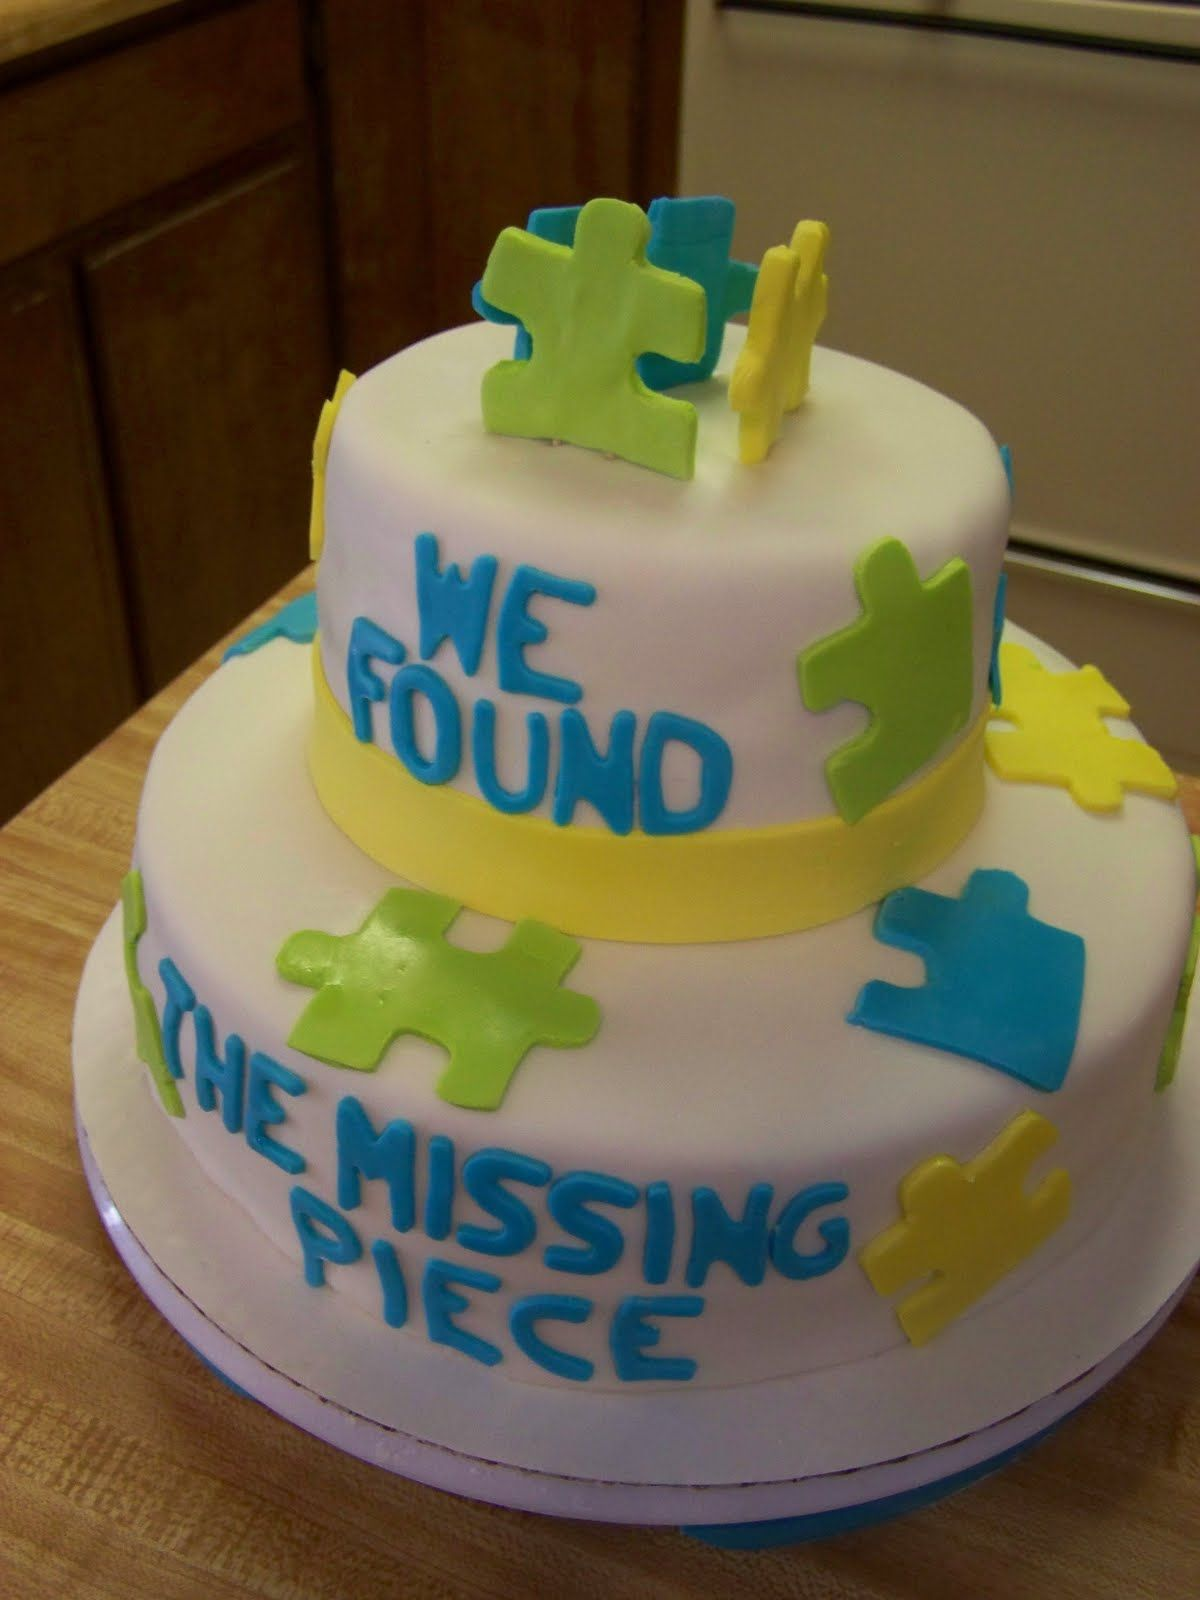 Adoption Themed Cakes Cake A Licious Puzzle Pieces We Found The Missing